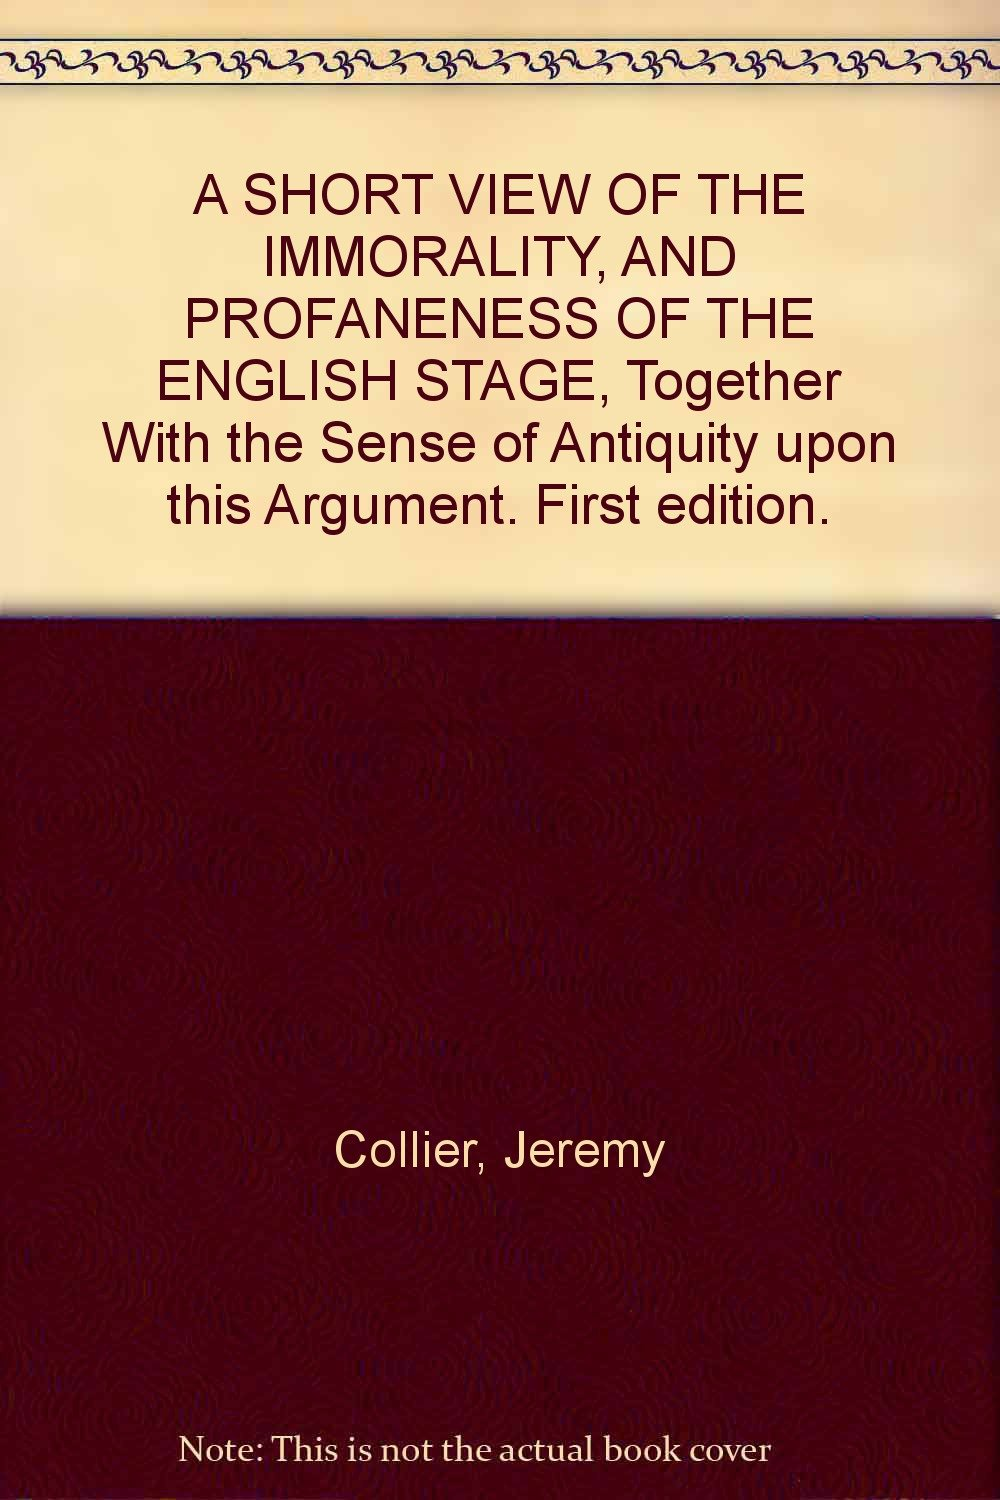 A SHORT VIEW OF THE IMMORALITY, AND PROFANENESS OF THE ENGLISH STAGE,  Together With the Sense of Antiquity upon this Argument. First edition.